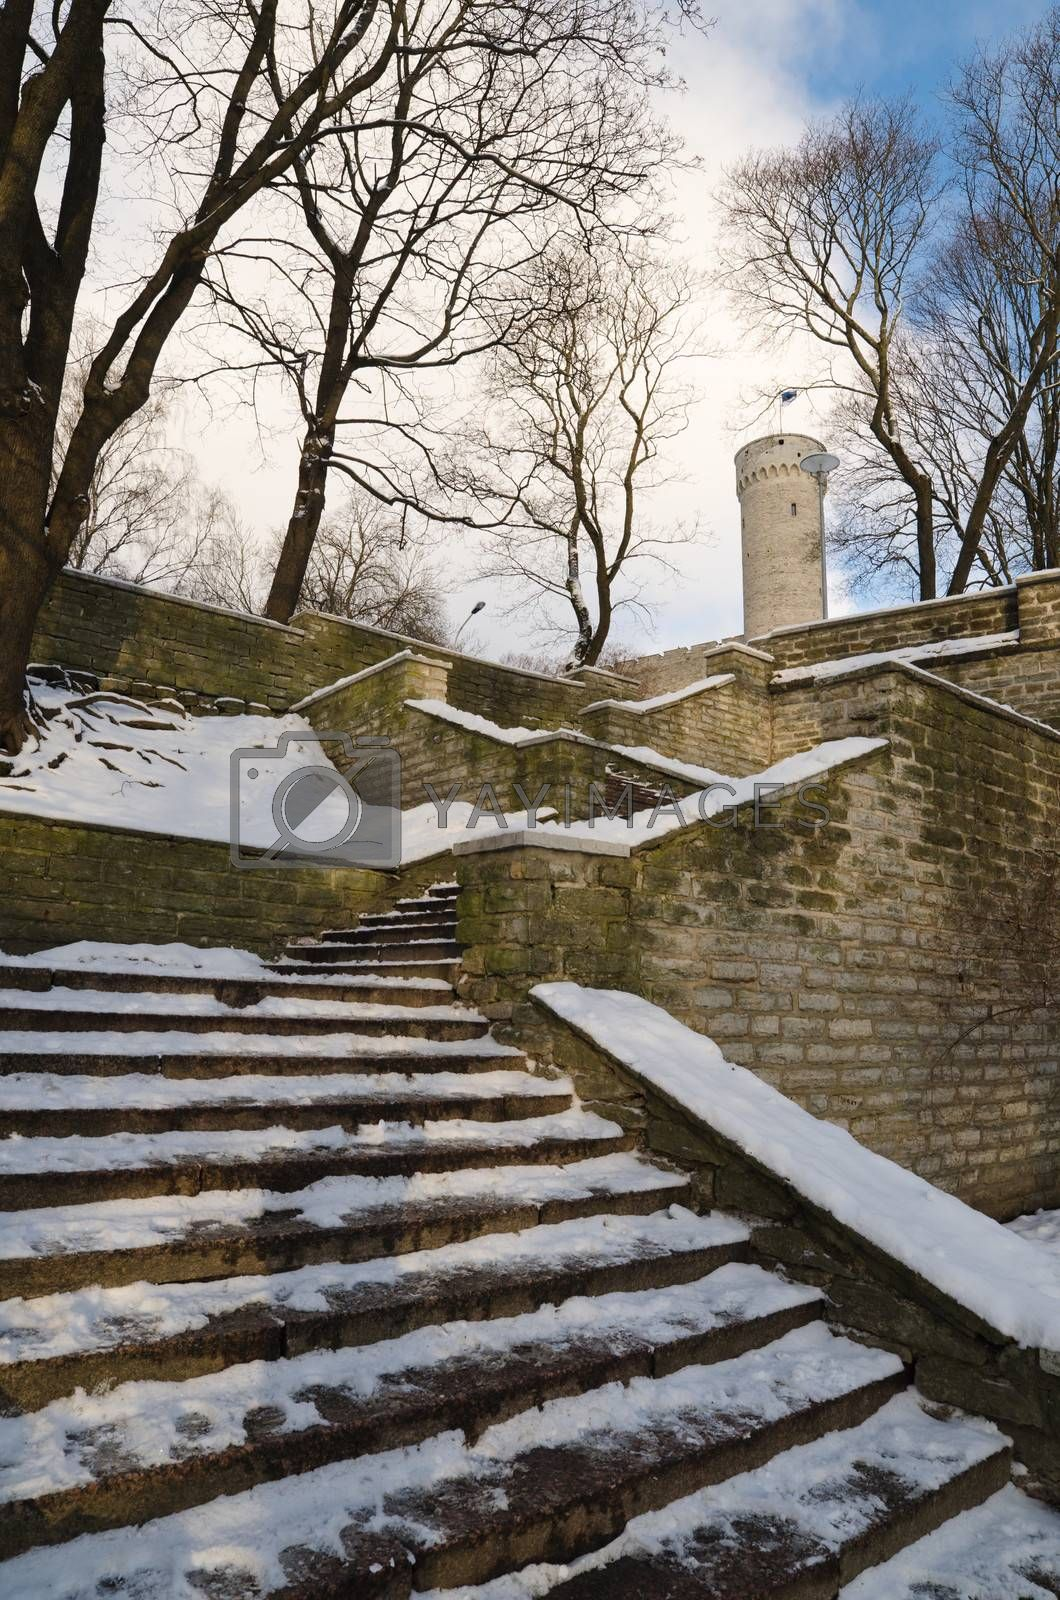 Stairs the leader on a medieval city wall in Tallinn